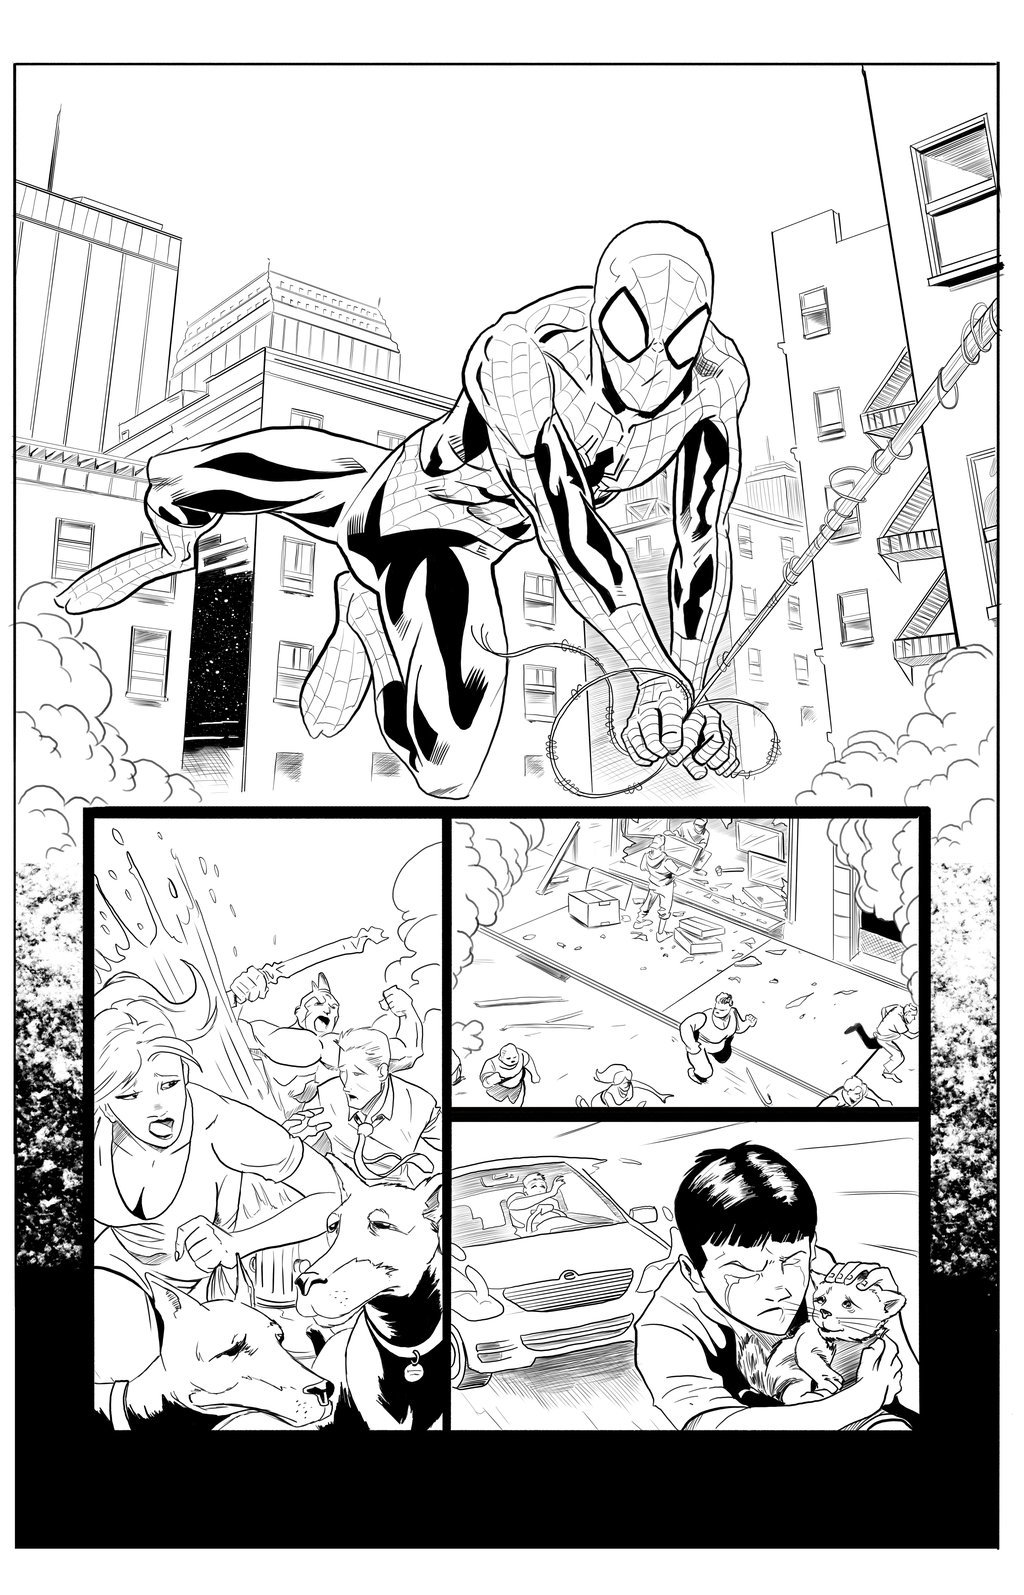 Matt james spider man sample page 4 by mattjamescomicarts d7ga5ak